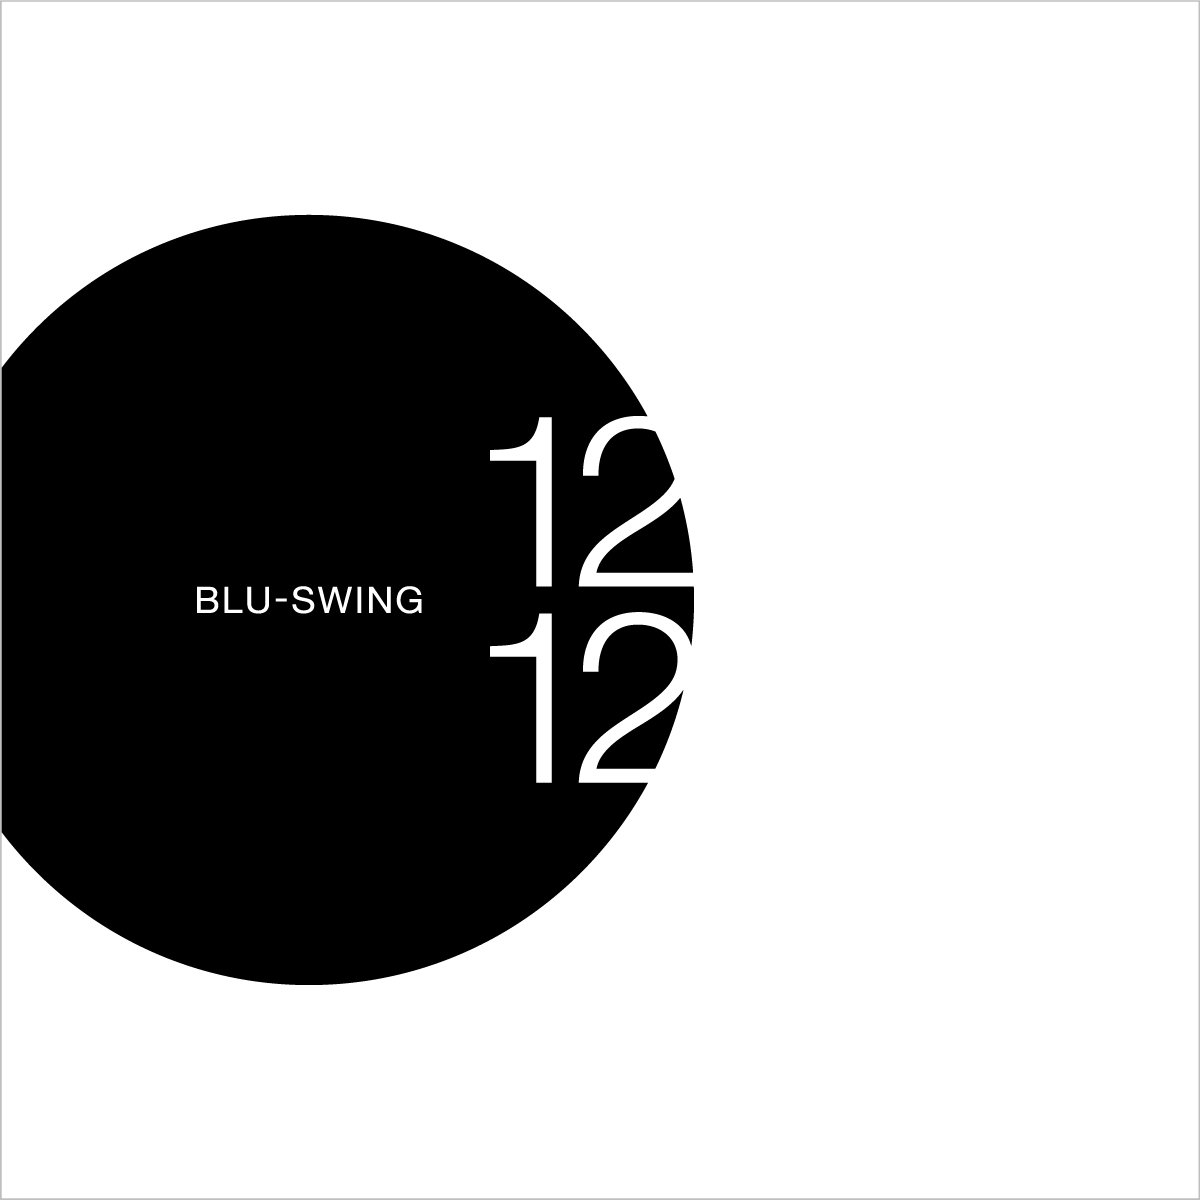 Amazon.co.jp: BLU-SWING : 1212...